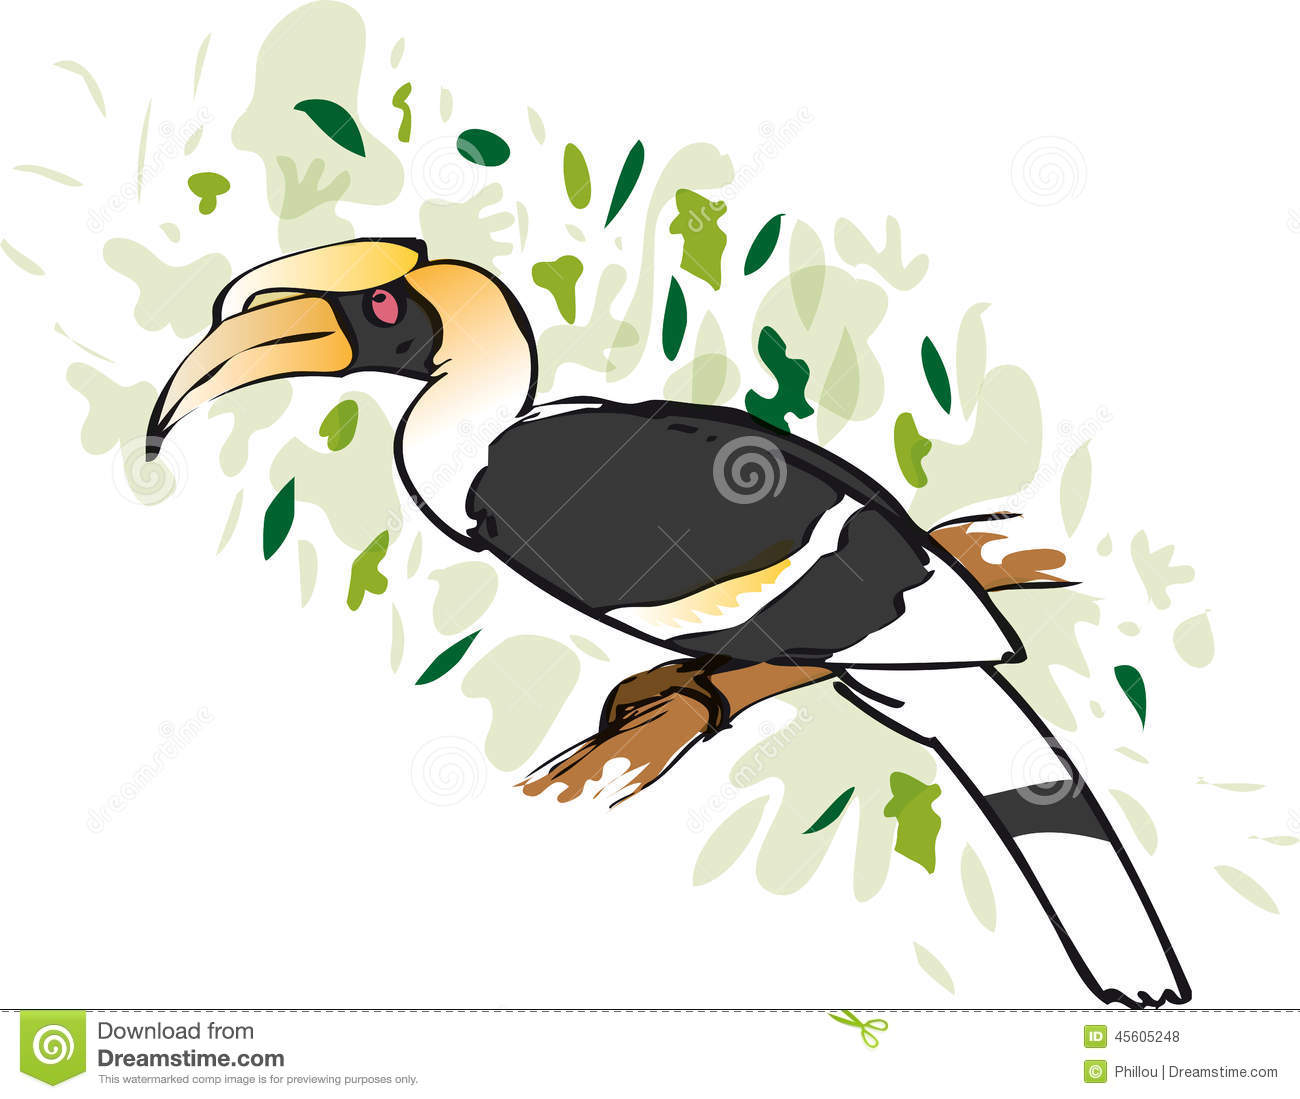 Rhinoceros Hornbill clipart #6, Download drawings